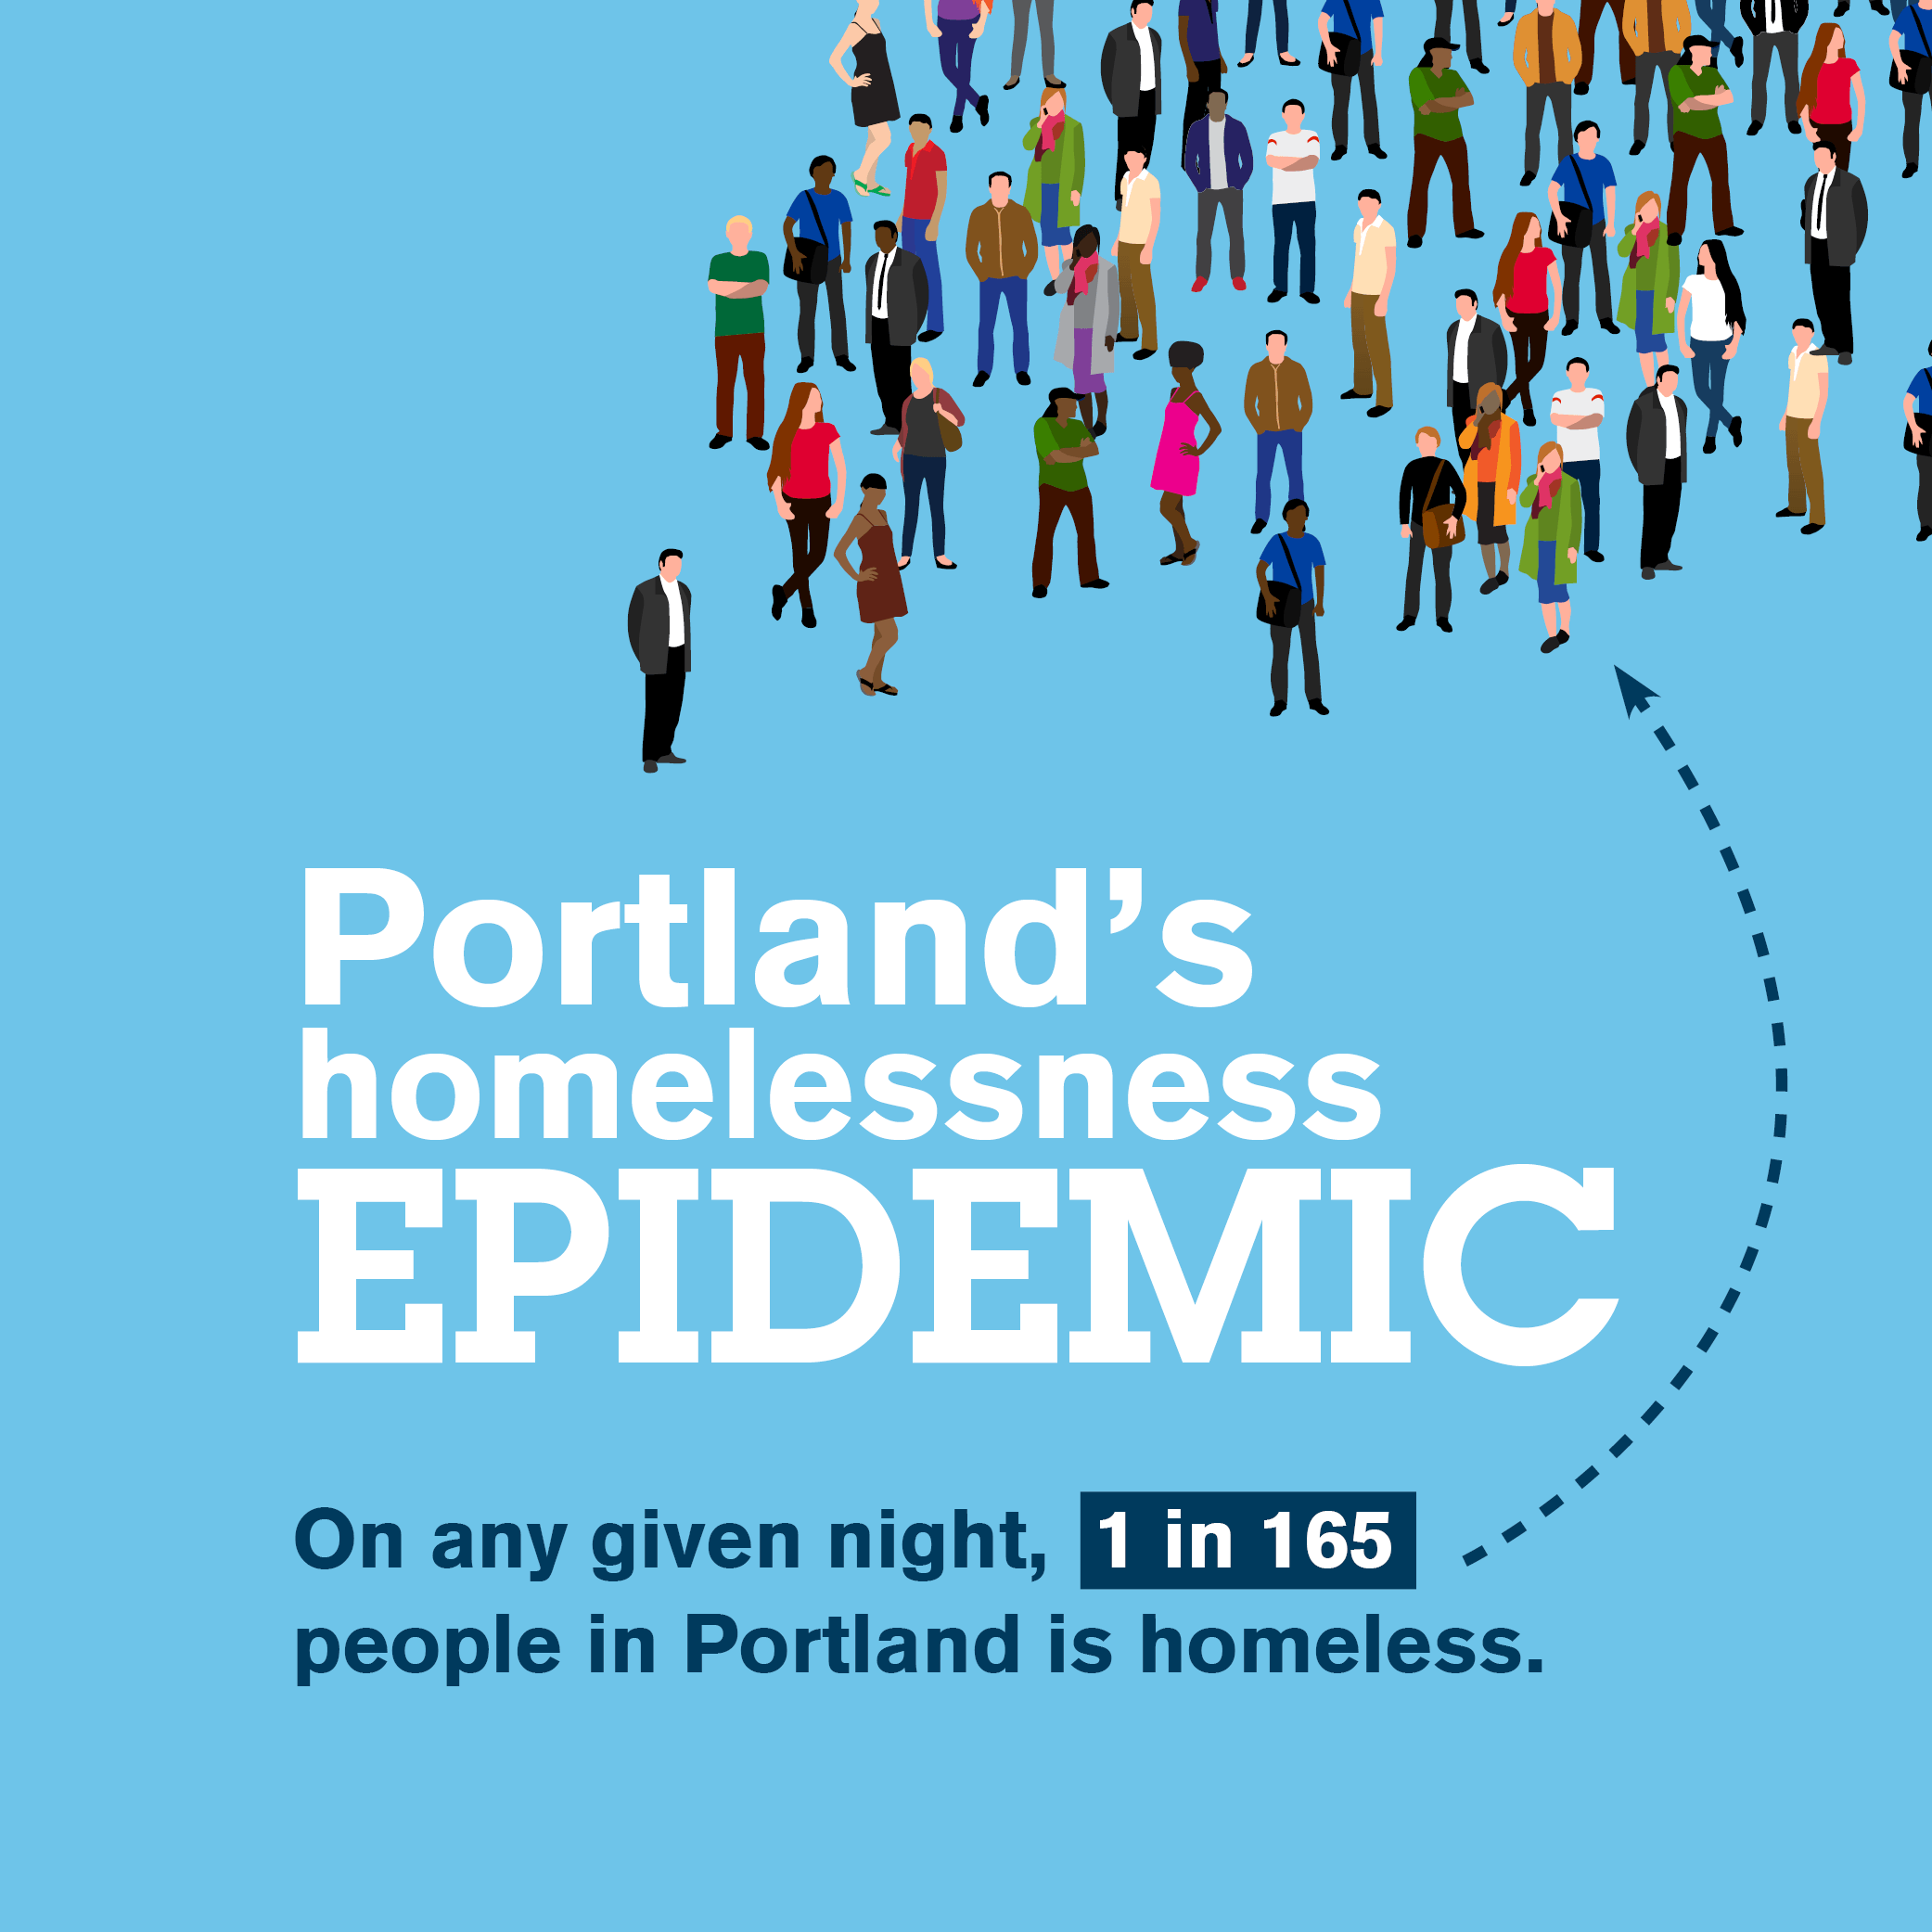 Portland's Homelessness Epidemic (Infographic)